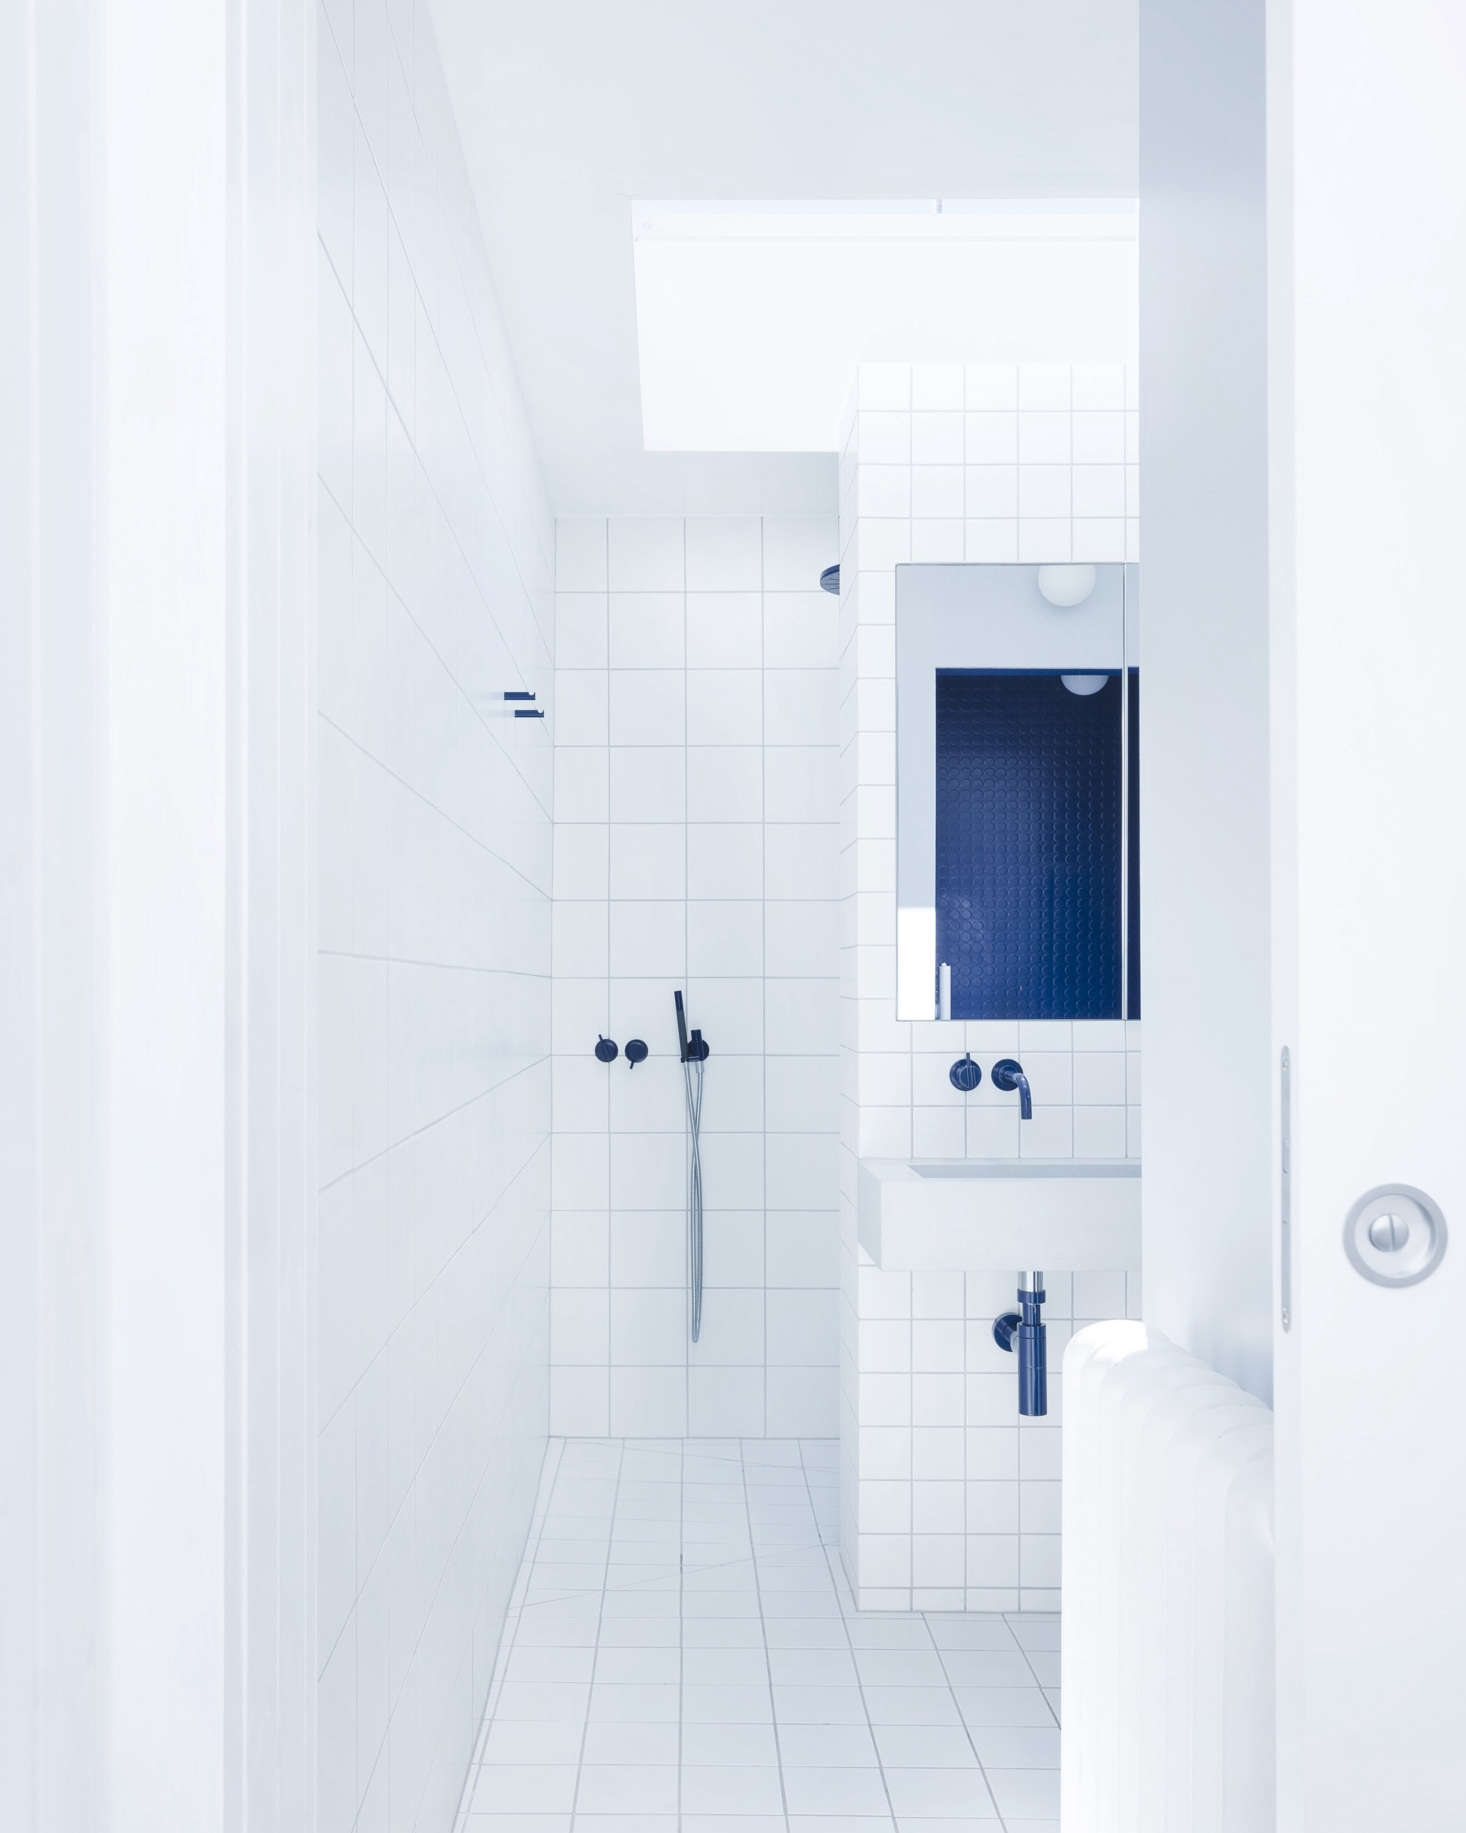 The en-suite blue-and-white master bath makes use of standard white tile in three sizes: the smallest on the sink wall, medium on the floor, and the largest on the central wall, all with gray grout.